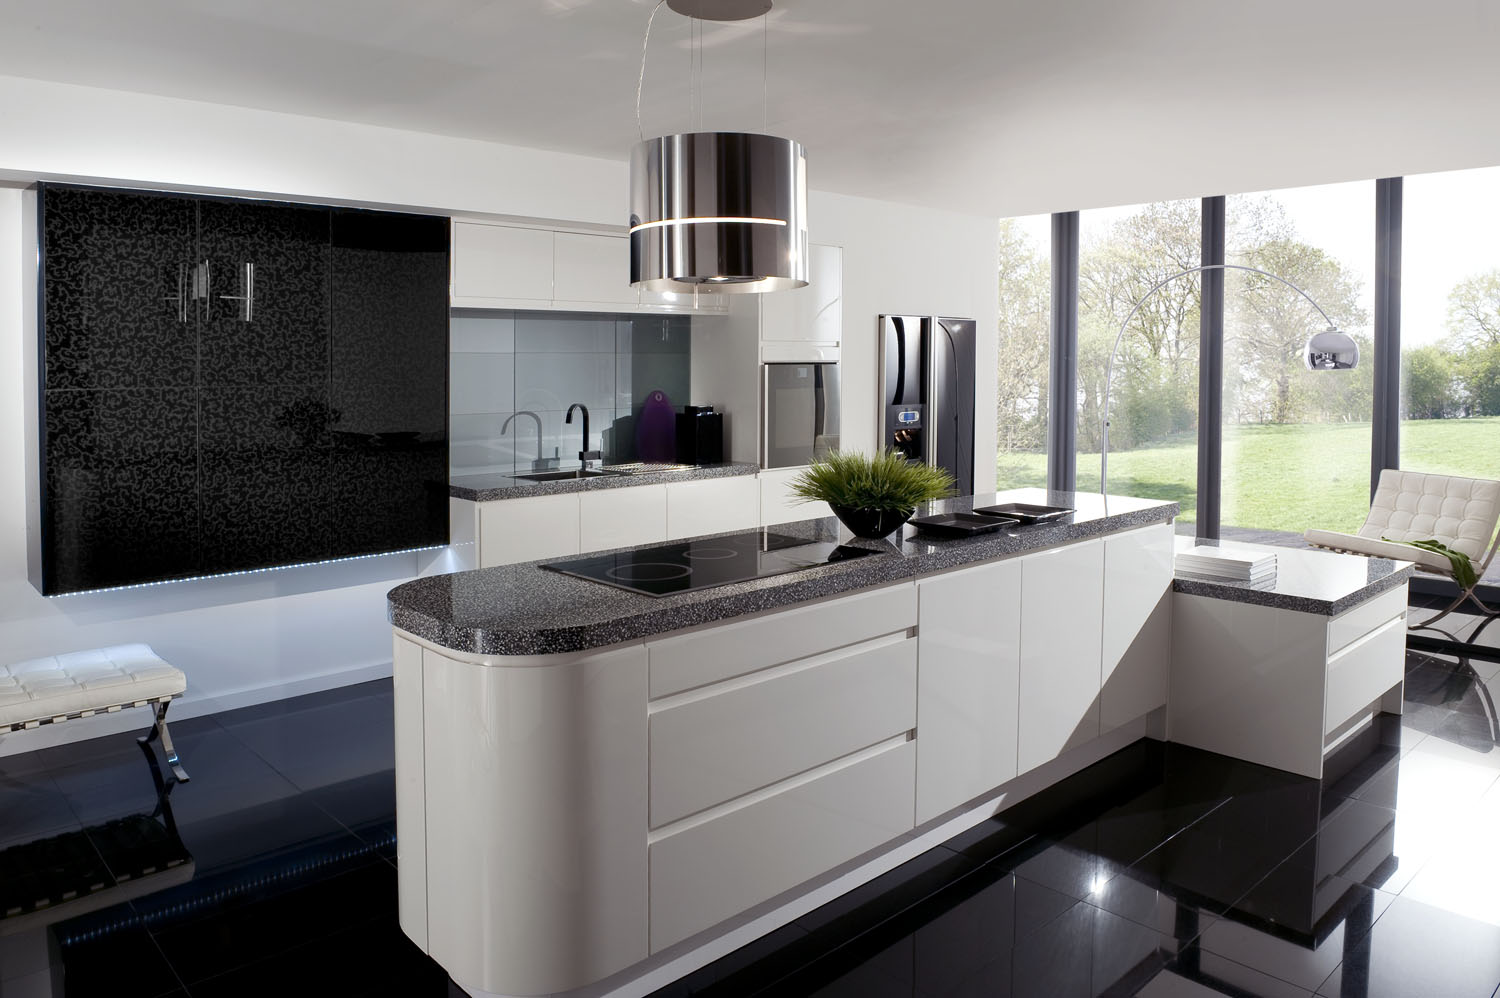 Black and White Kitchen Interior photo - 1